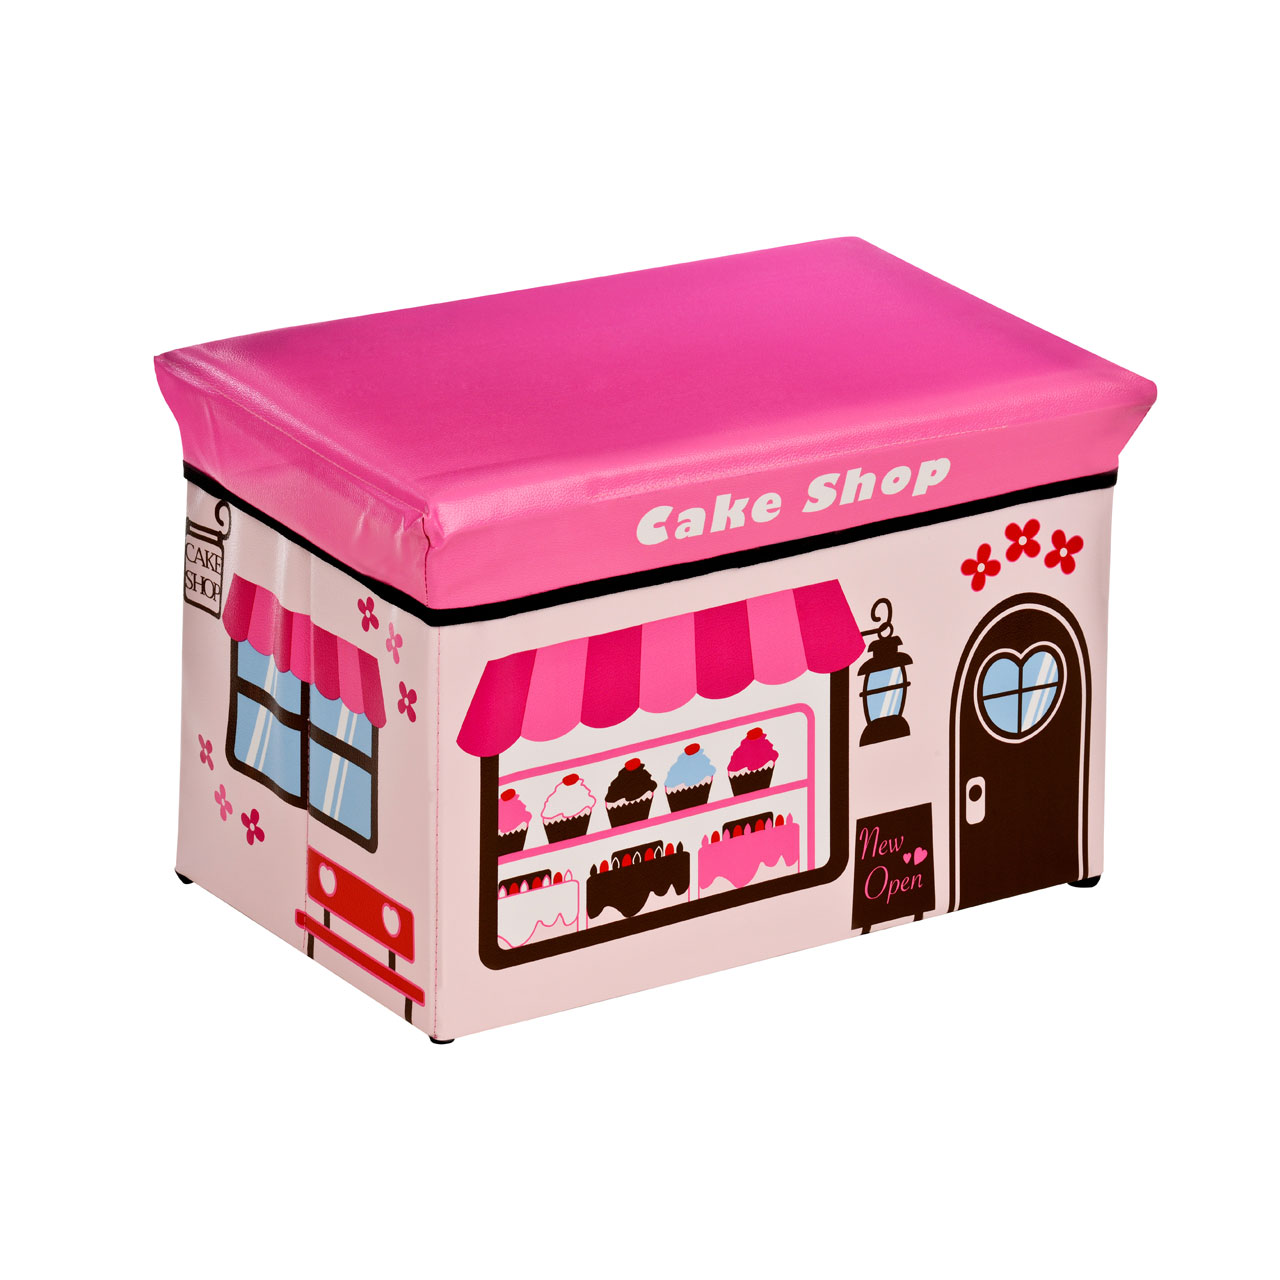 Details About Kids Cake Shop Design Storage Box Childrens Chest With Padded Lid For Sitting